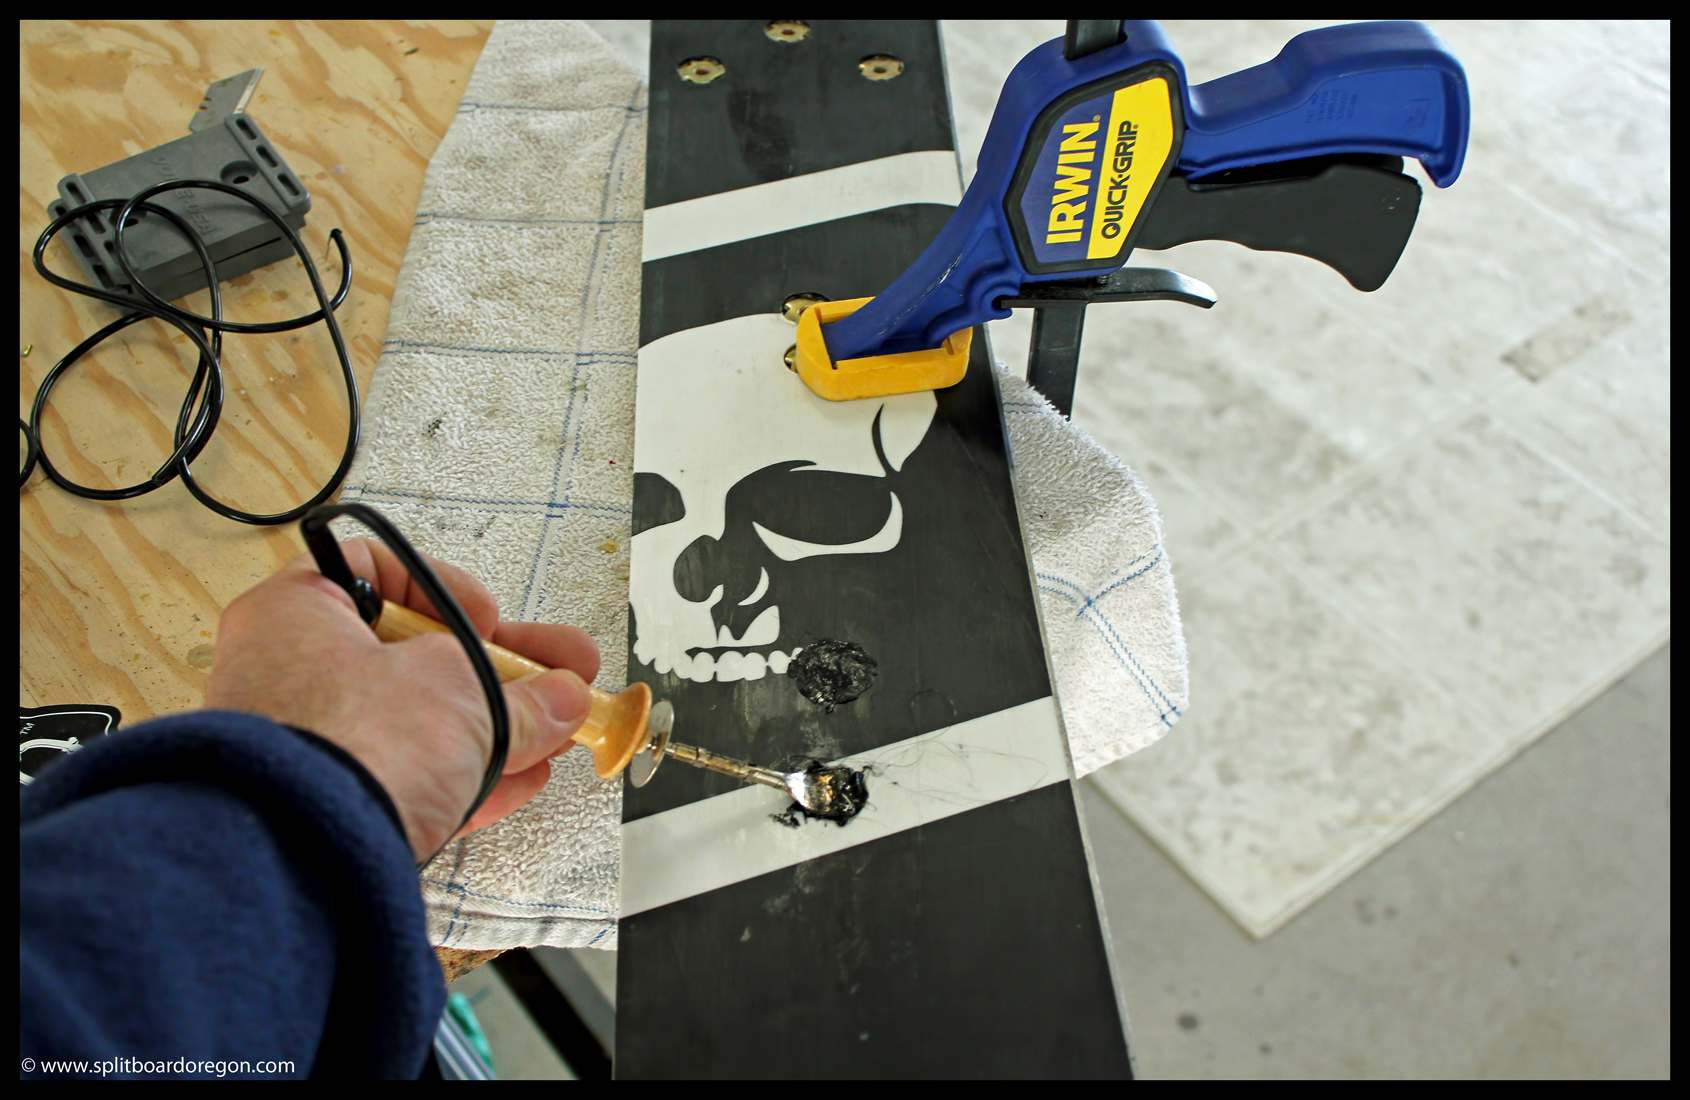 Filling the base holes with p-tex